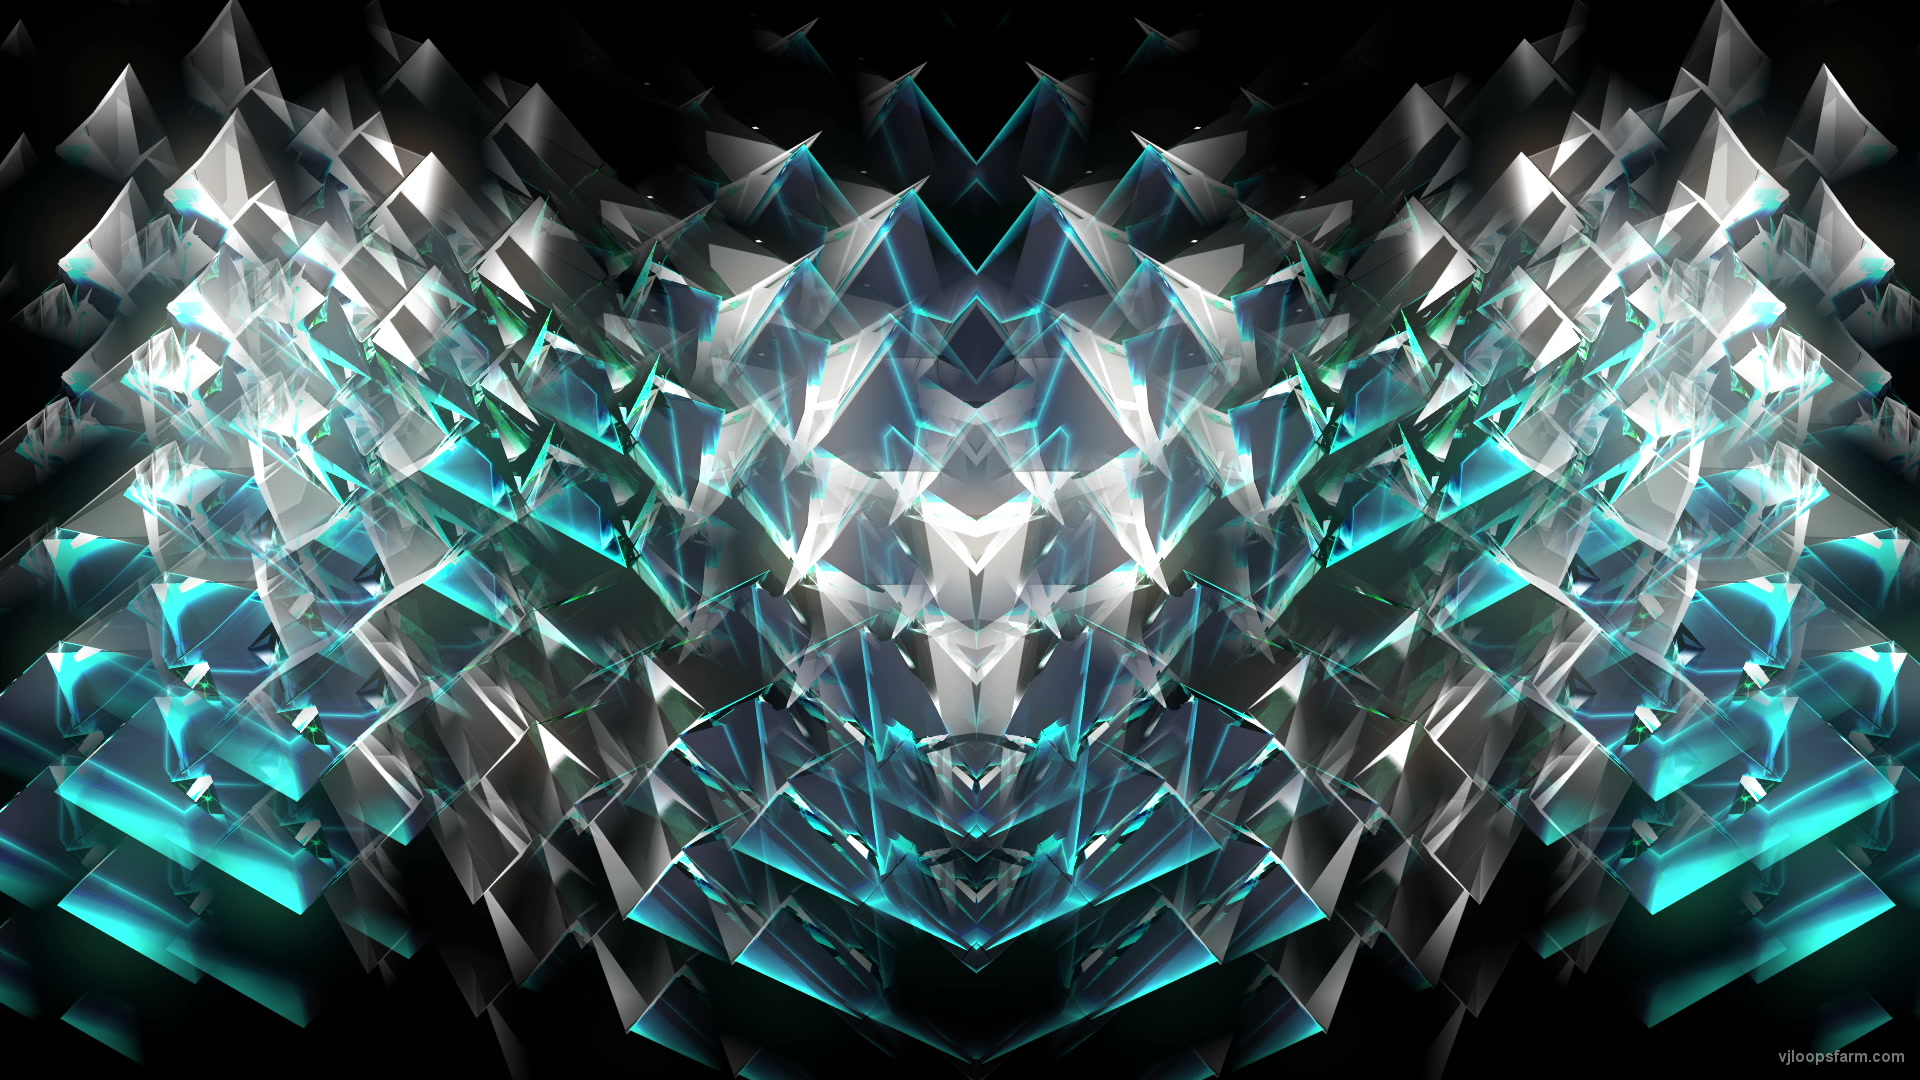 vj video background Strukt-Wakedistort-M4_1920x1080_50fps_VJLoop_LIMEART_003